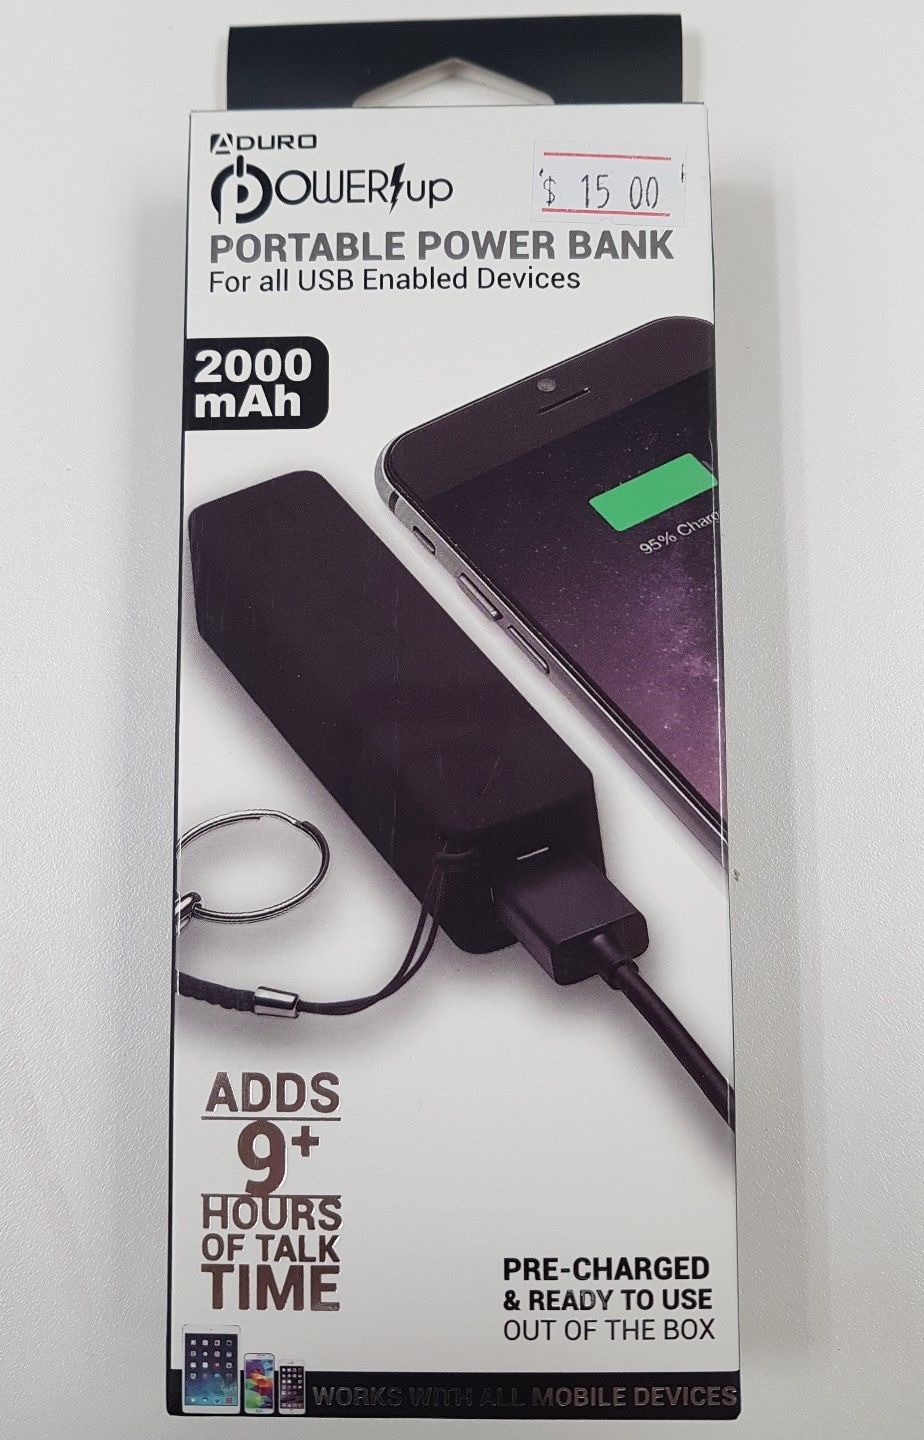 Aduro Power up Portable Power Bank - Resale Shop Canada